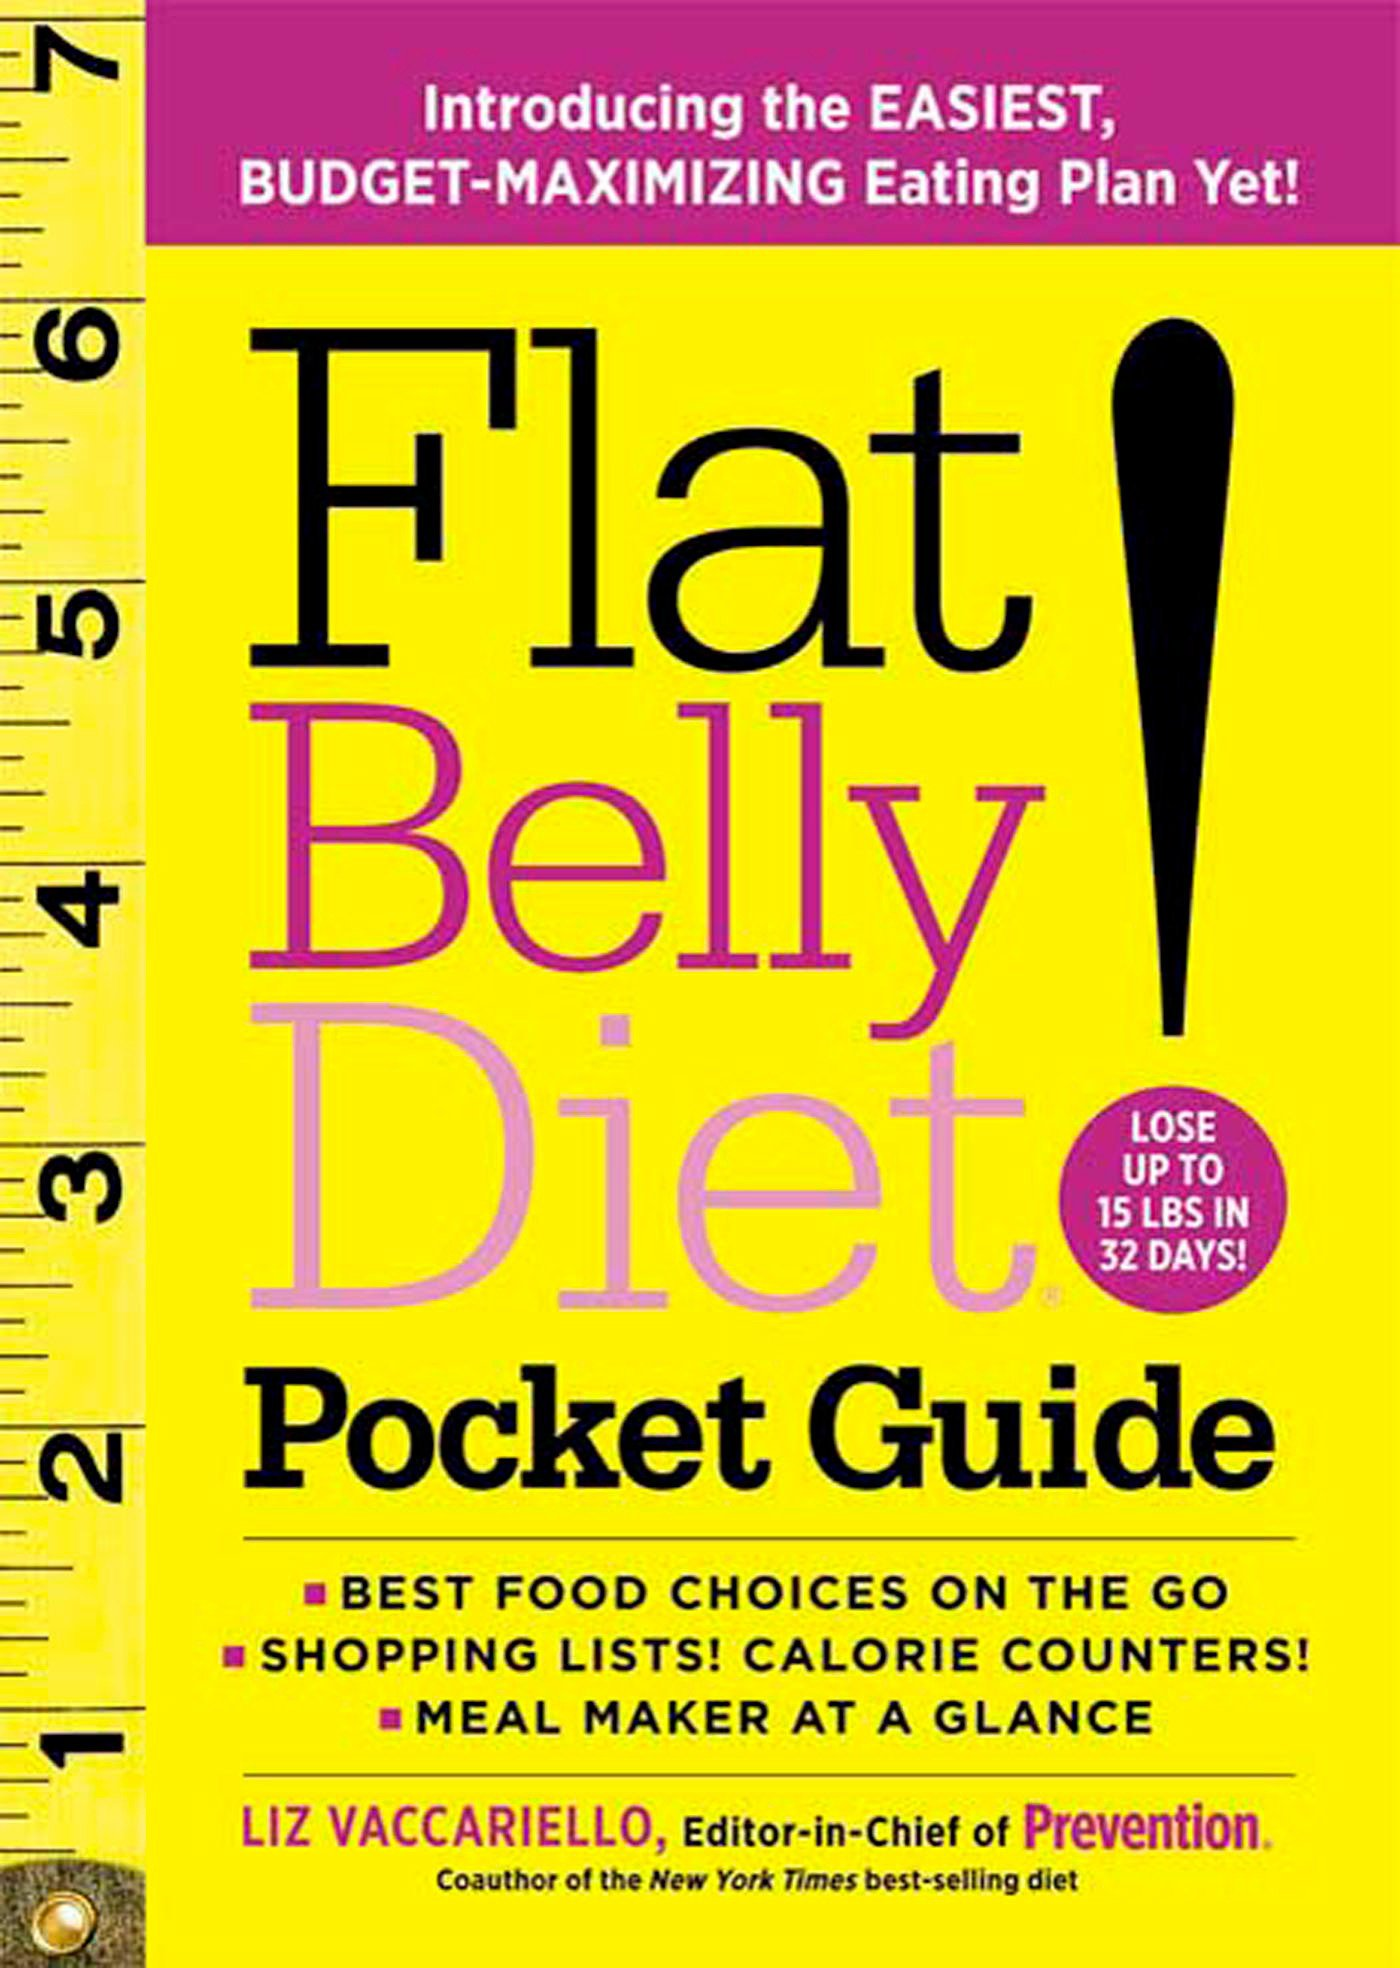 Pocket Guide: Introducing the EASIEST, BUDGET-MAXIMIZING Eating Plan Yet: Liz  Vaccariello: 9781605296500: Amazon.com: Books